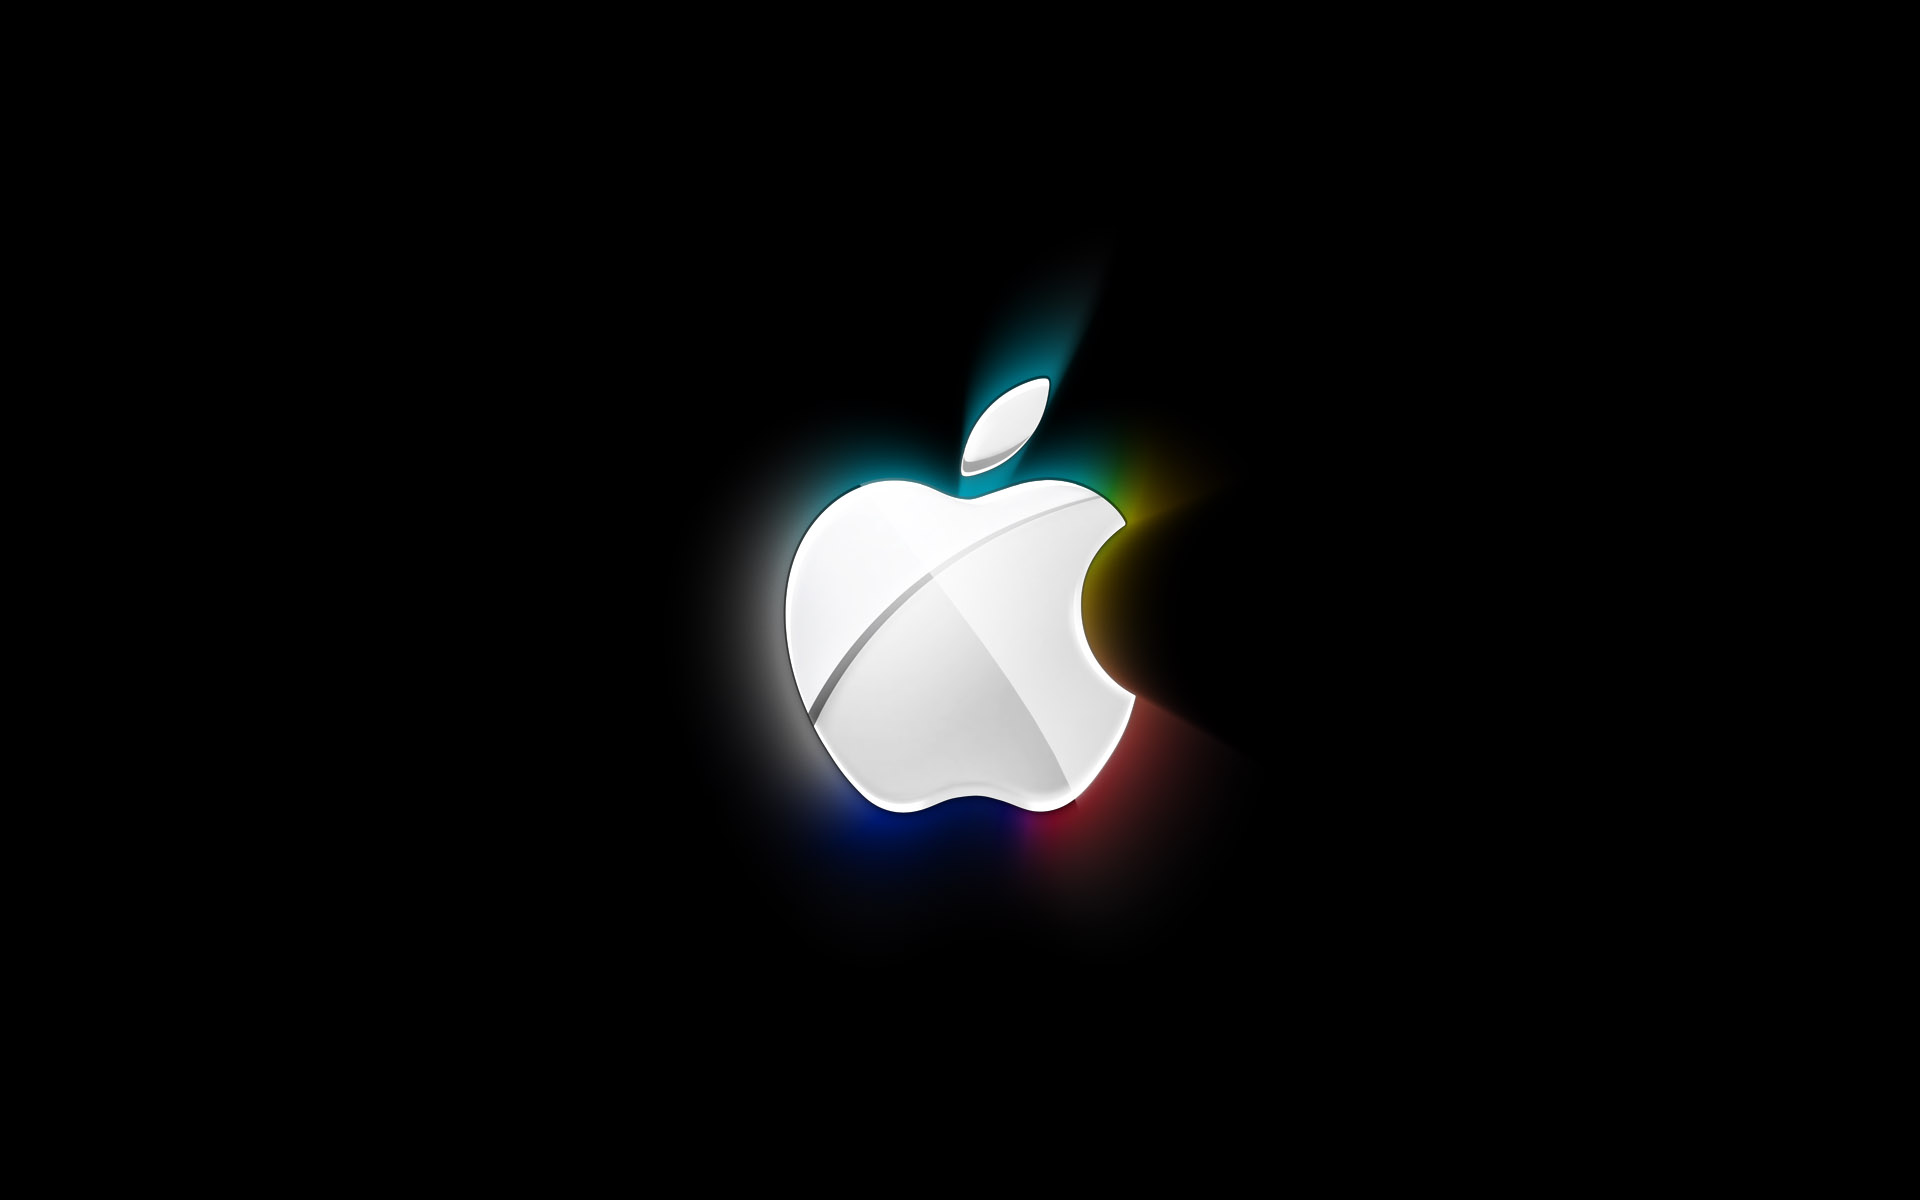 Apple Colorful Spectrum Shade 762.36 Kb